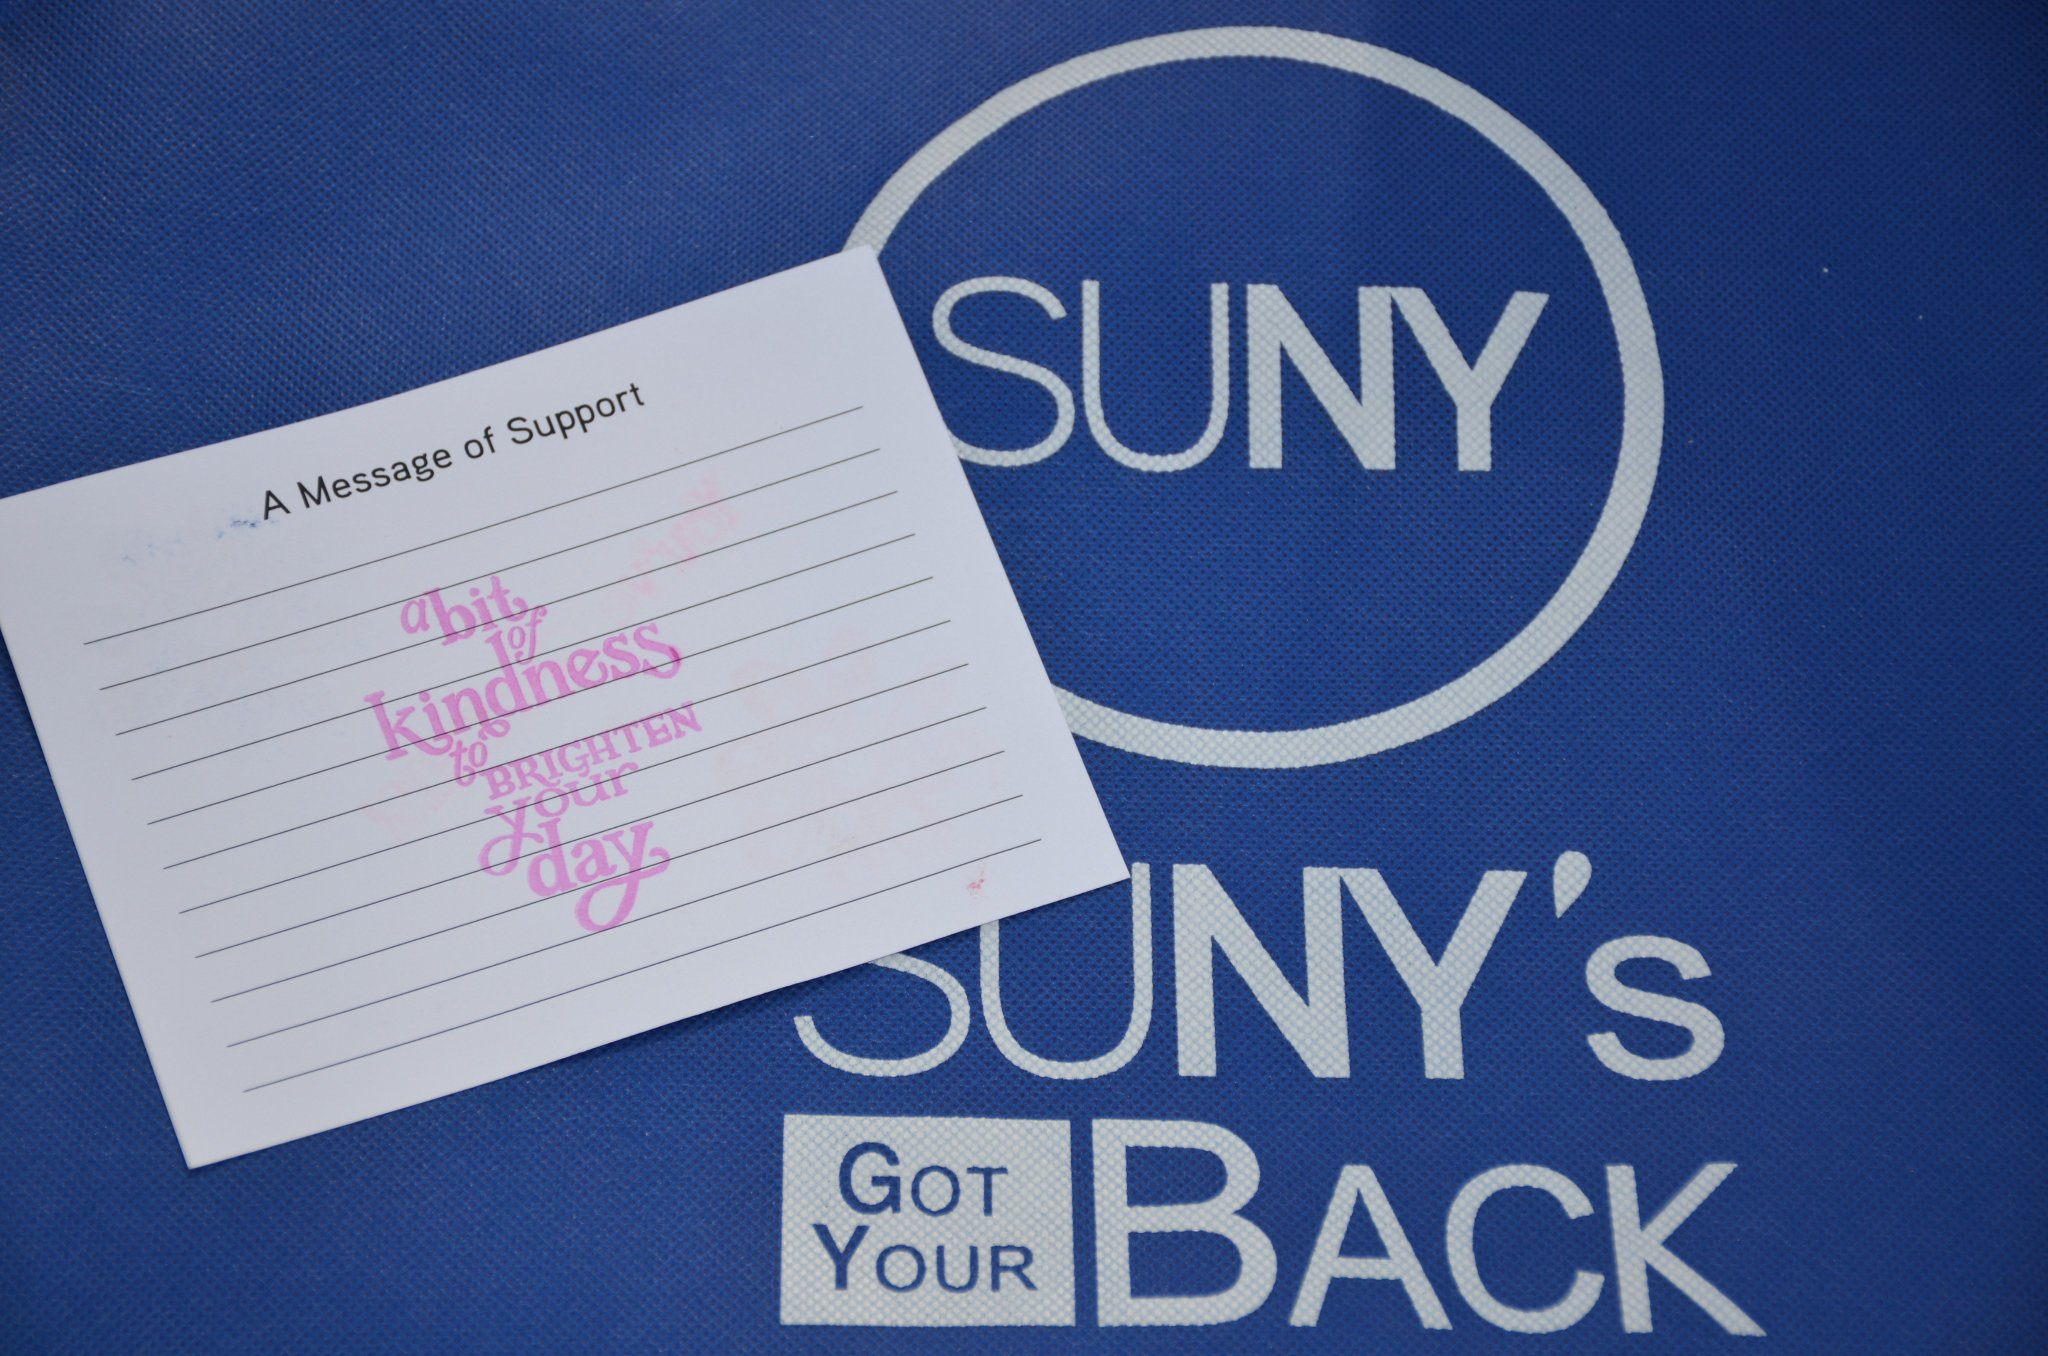 A great day as our partners & us filled 5,000 comfort bags for sexual & domestic violence shelters in the southern tier. #SUNYsGotYourBack https://t.co/9W6dcdKUP1